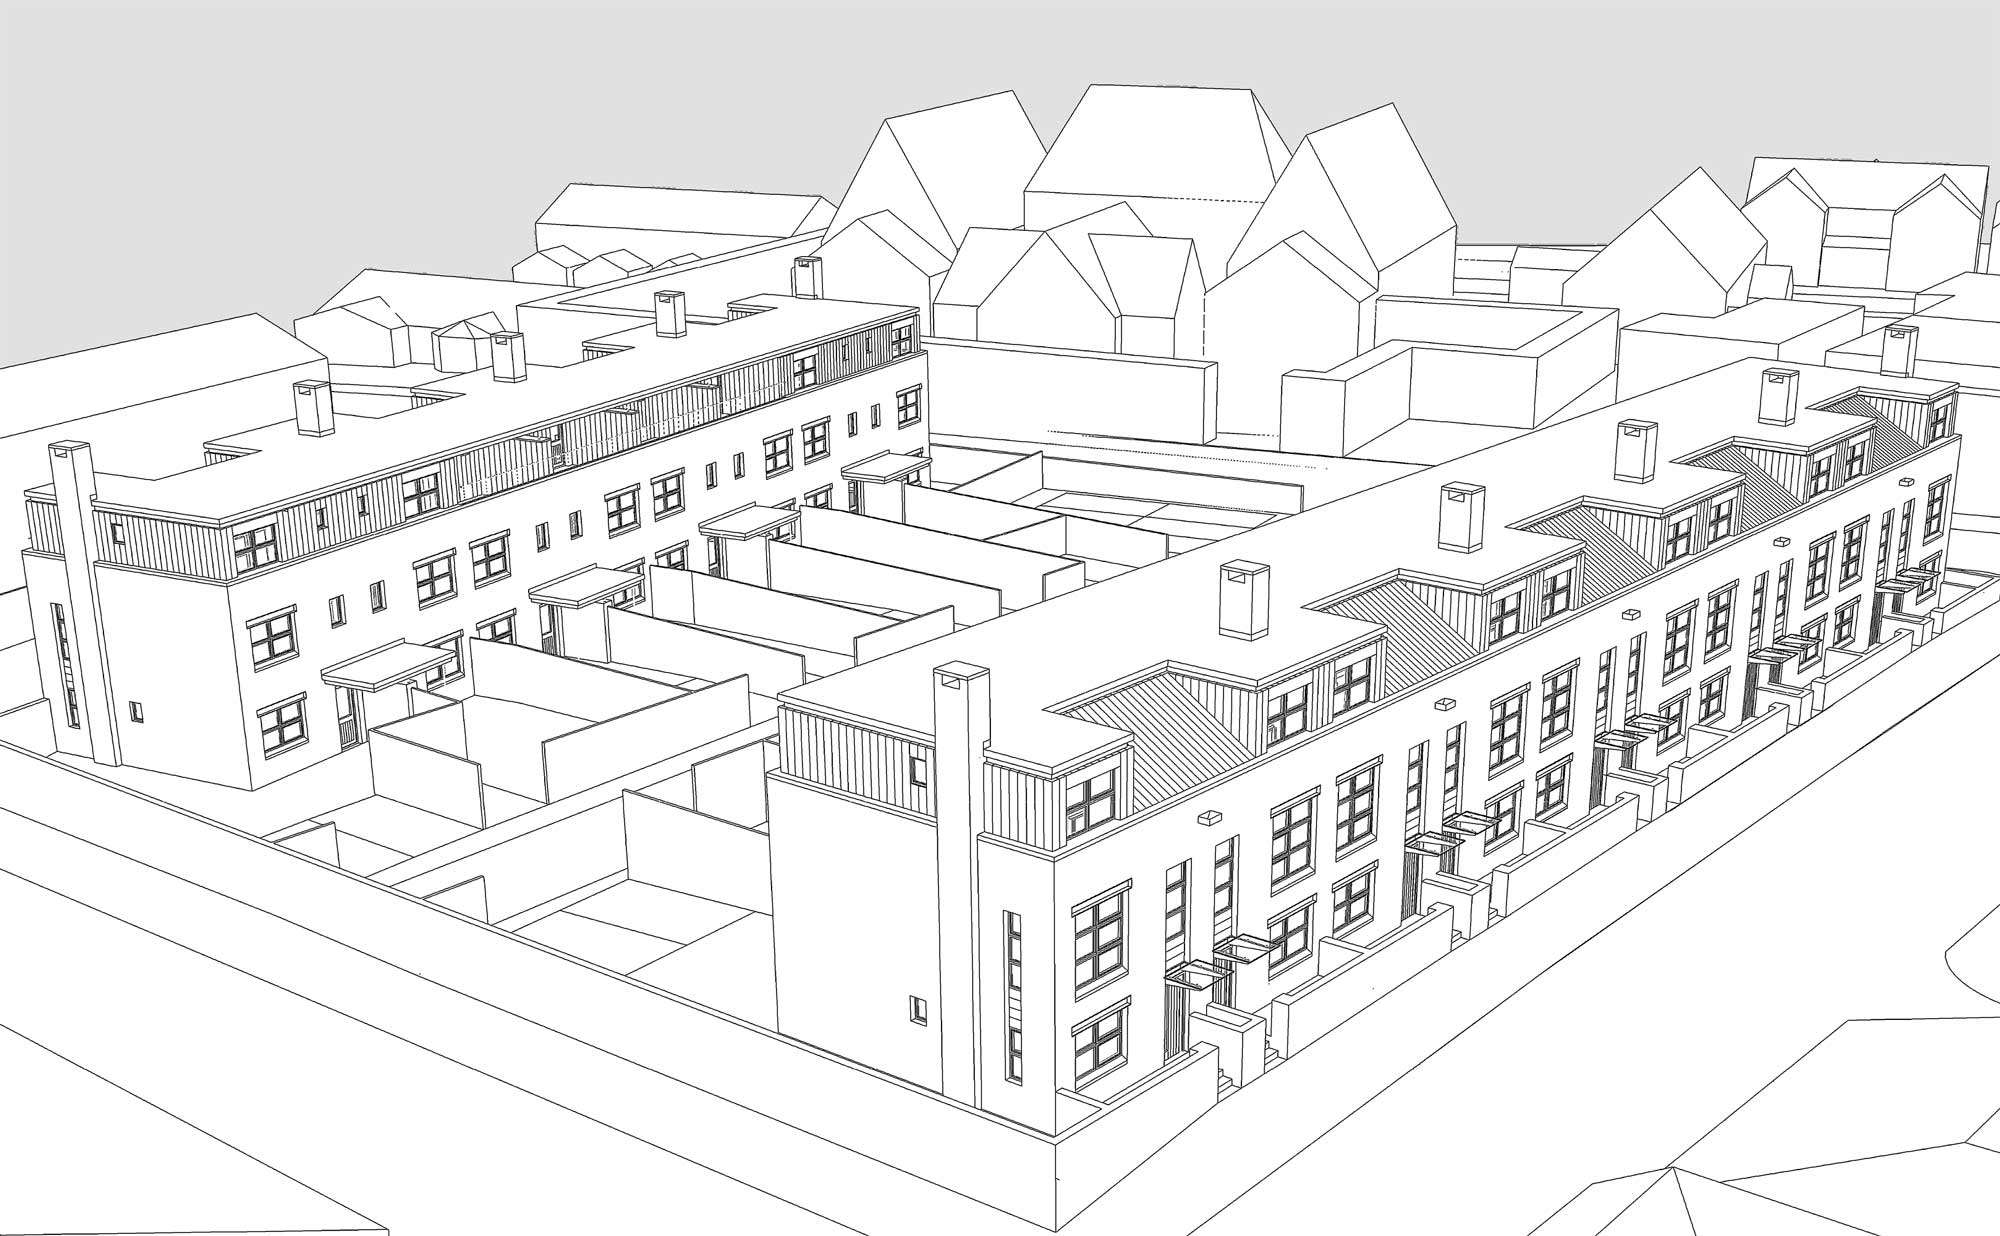 crewe social housing scheme sketch